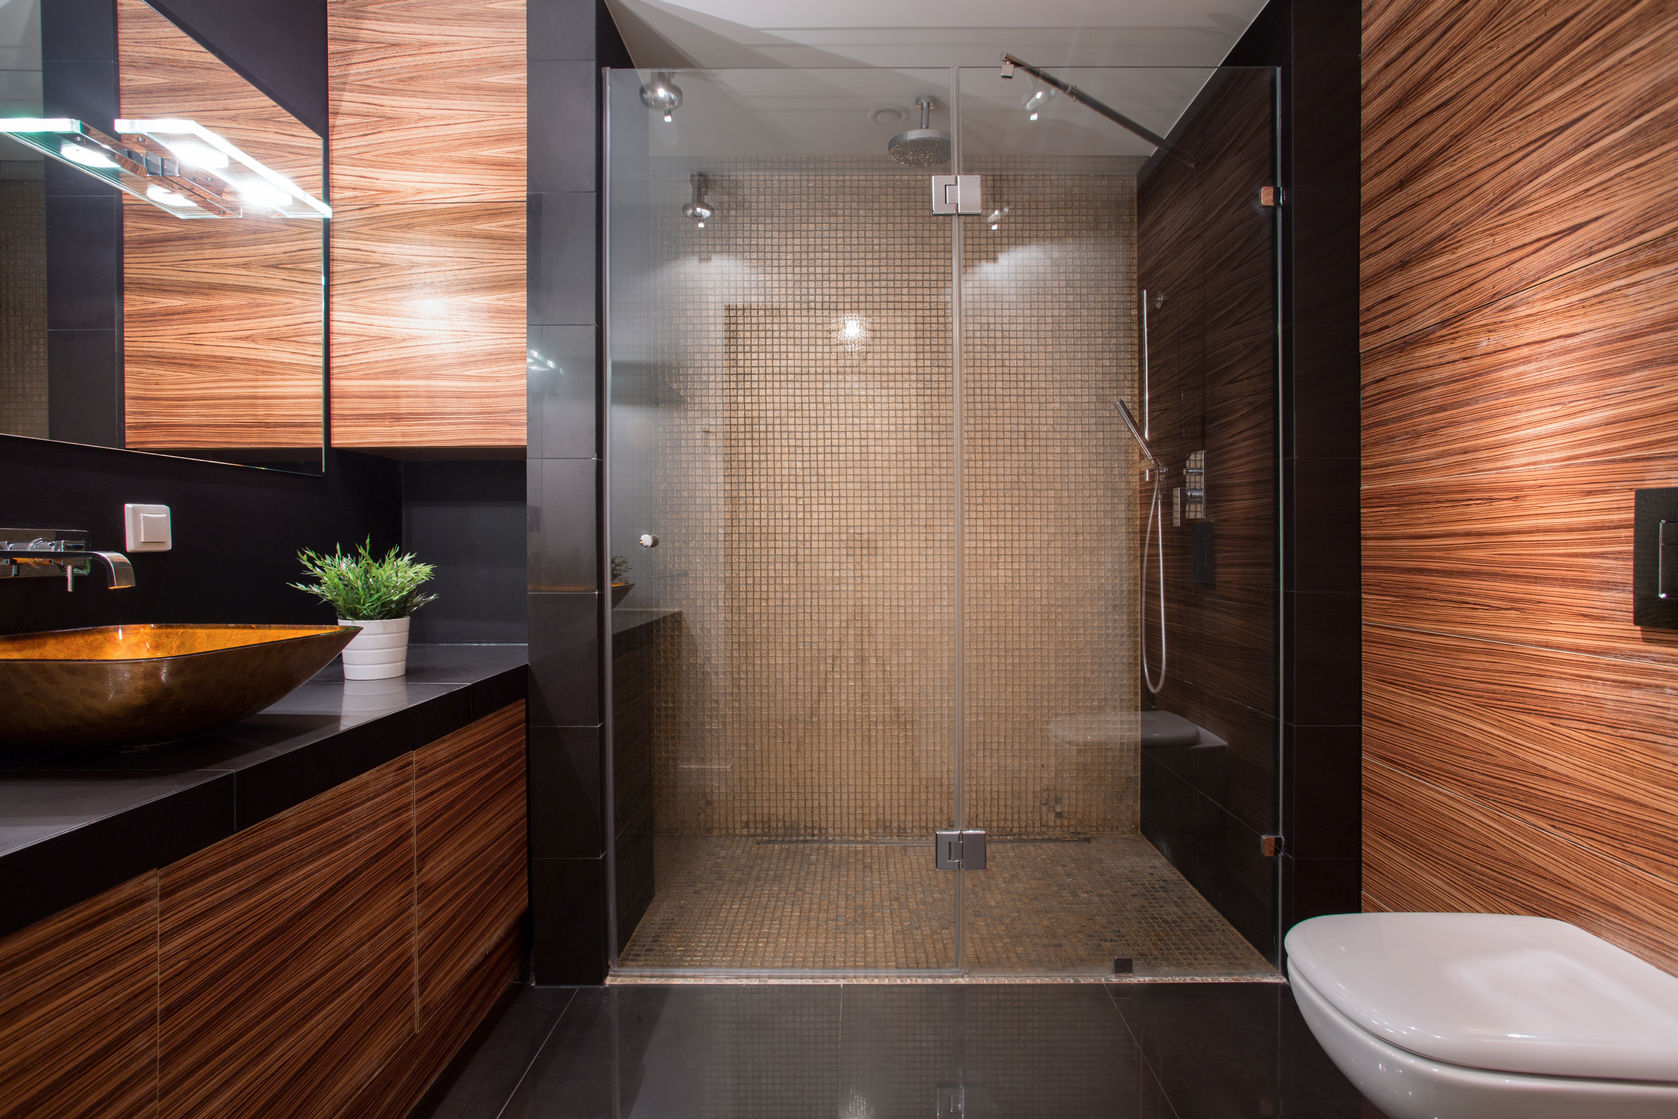 Time for a bathroom redo houzz unveils latest tech for toilets tubs and showers